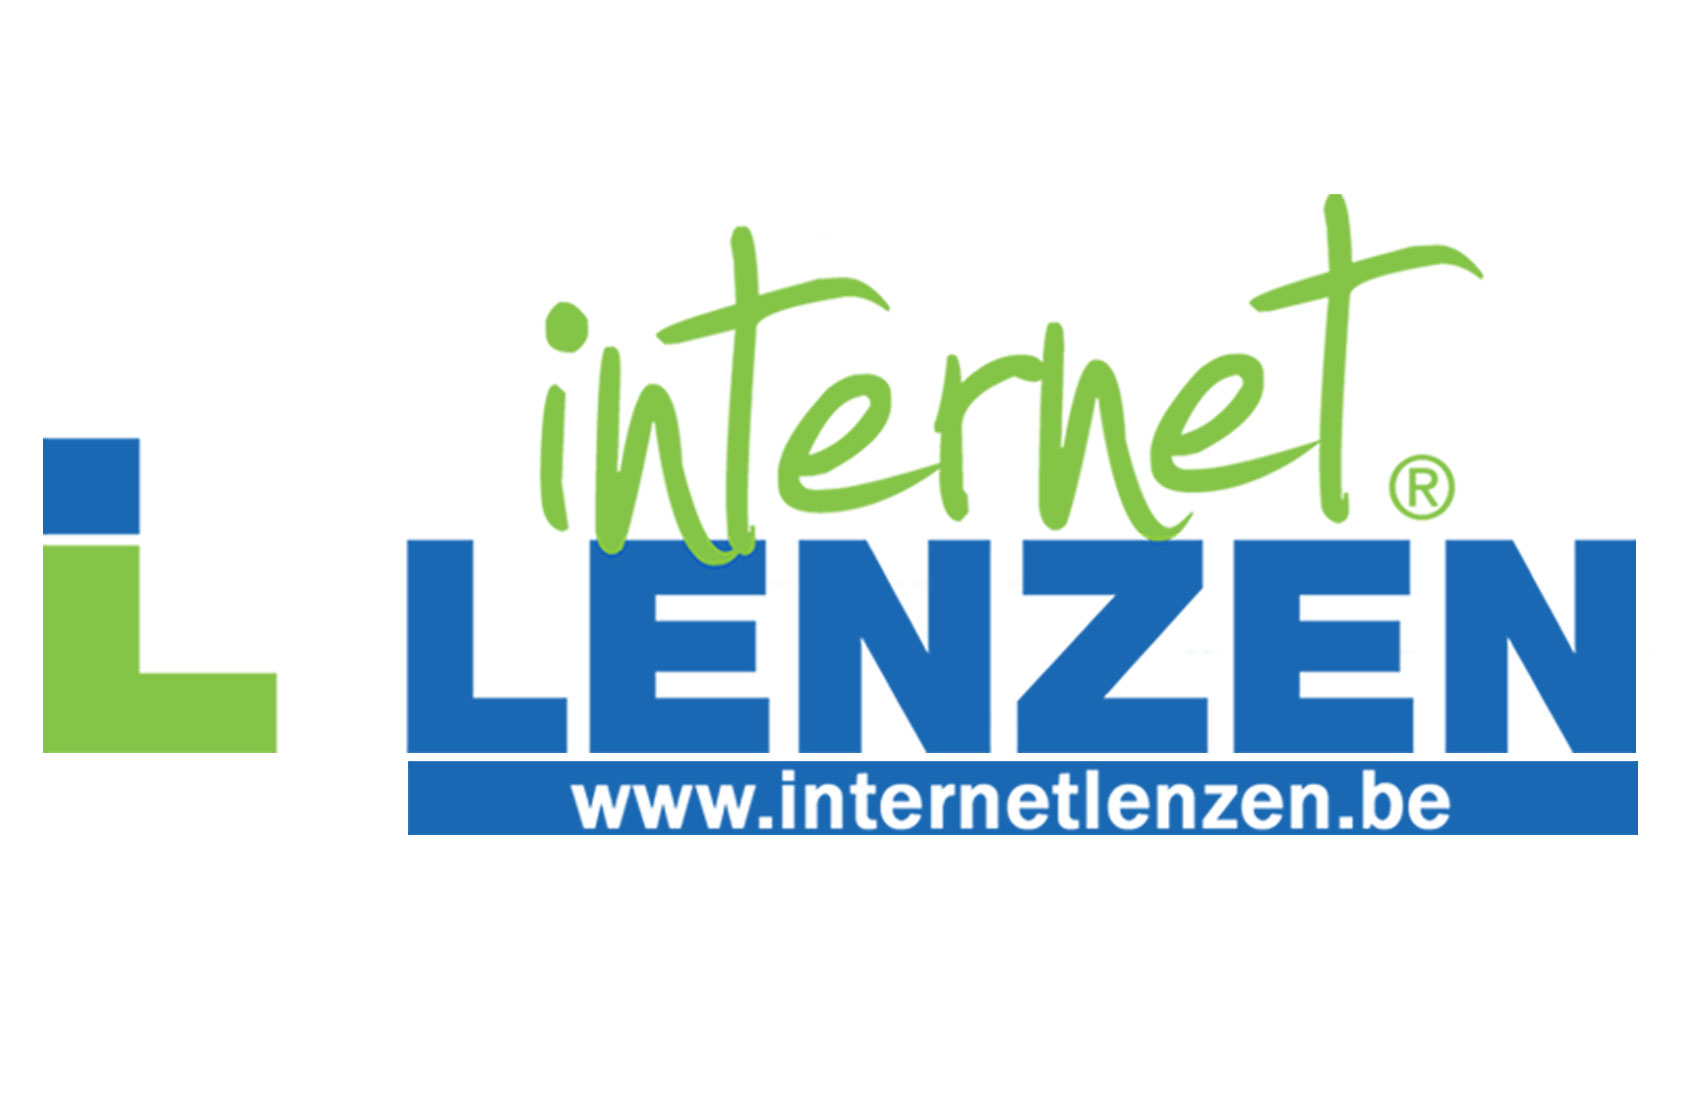 Internetlenzen.be